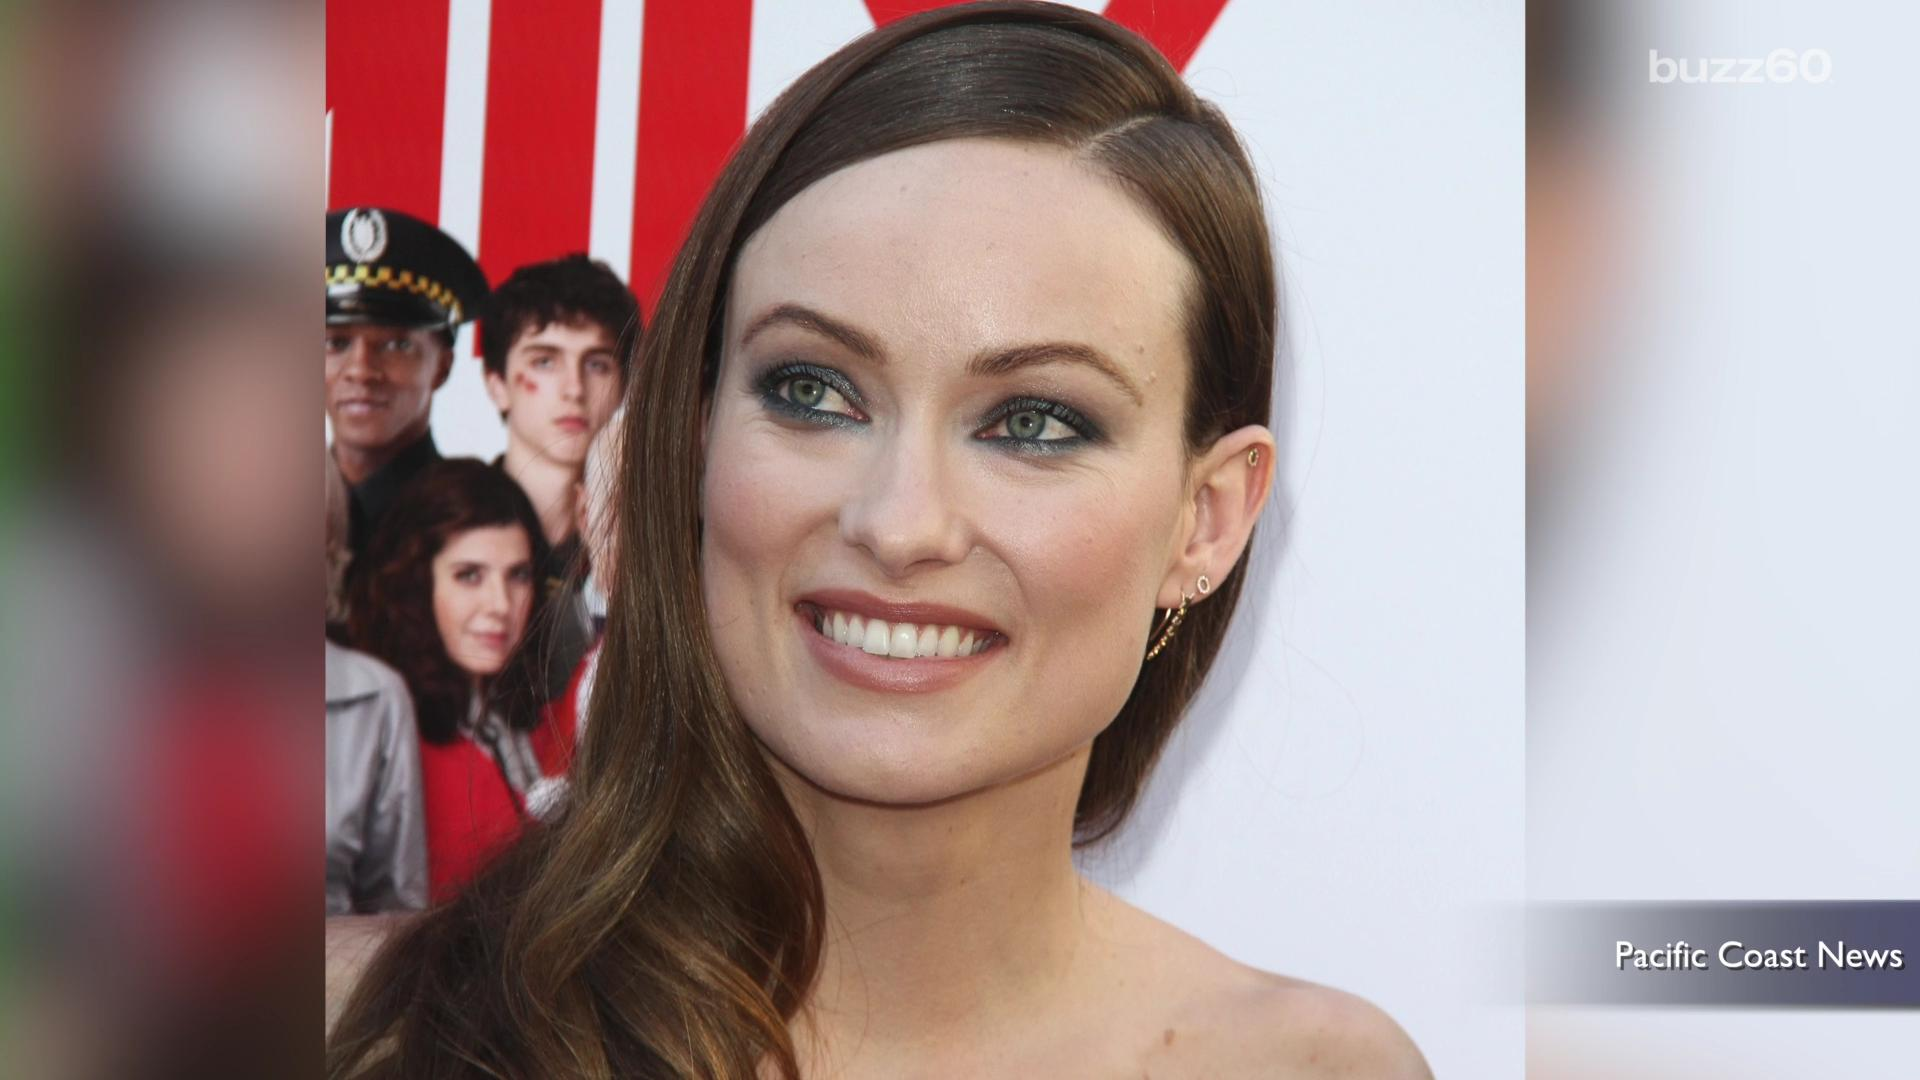 Olivia Wilde Says She Was 'Too Old' to Play Leonardo DiCaprio's Wife